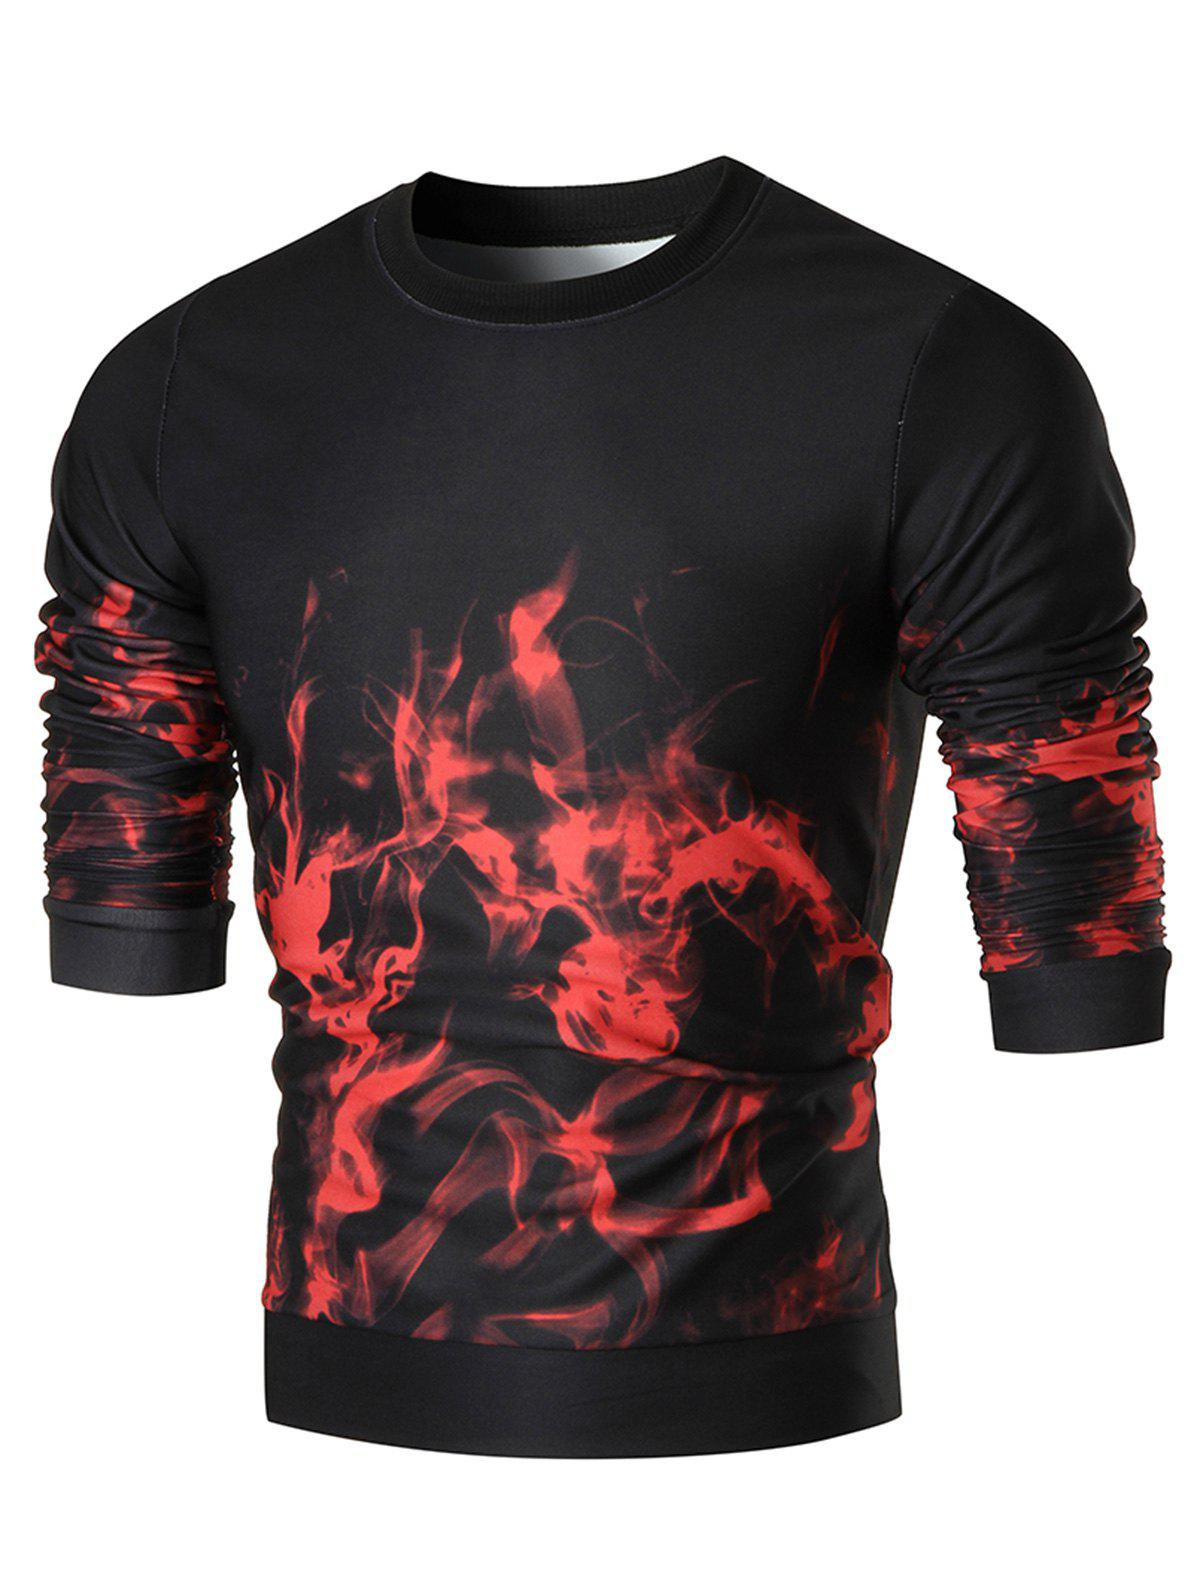 Flame Print Slim Fit Crew Neck Sweatshirt - COLORMIX 3XL